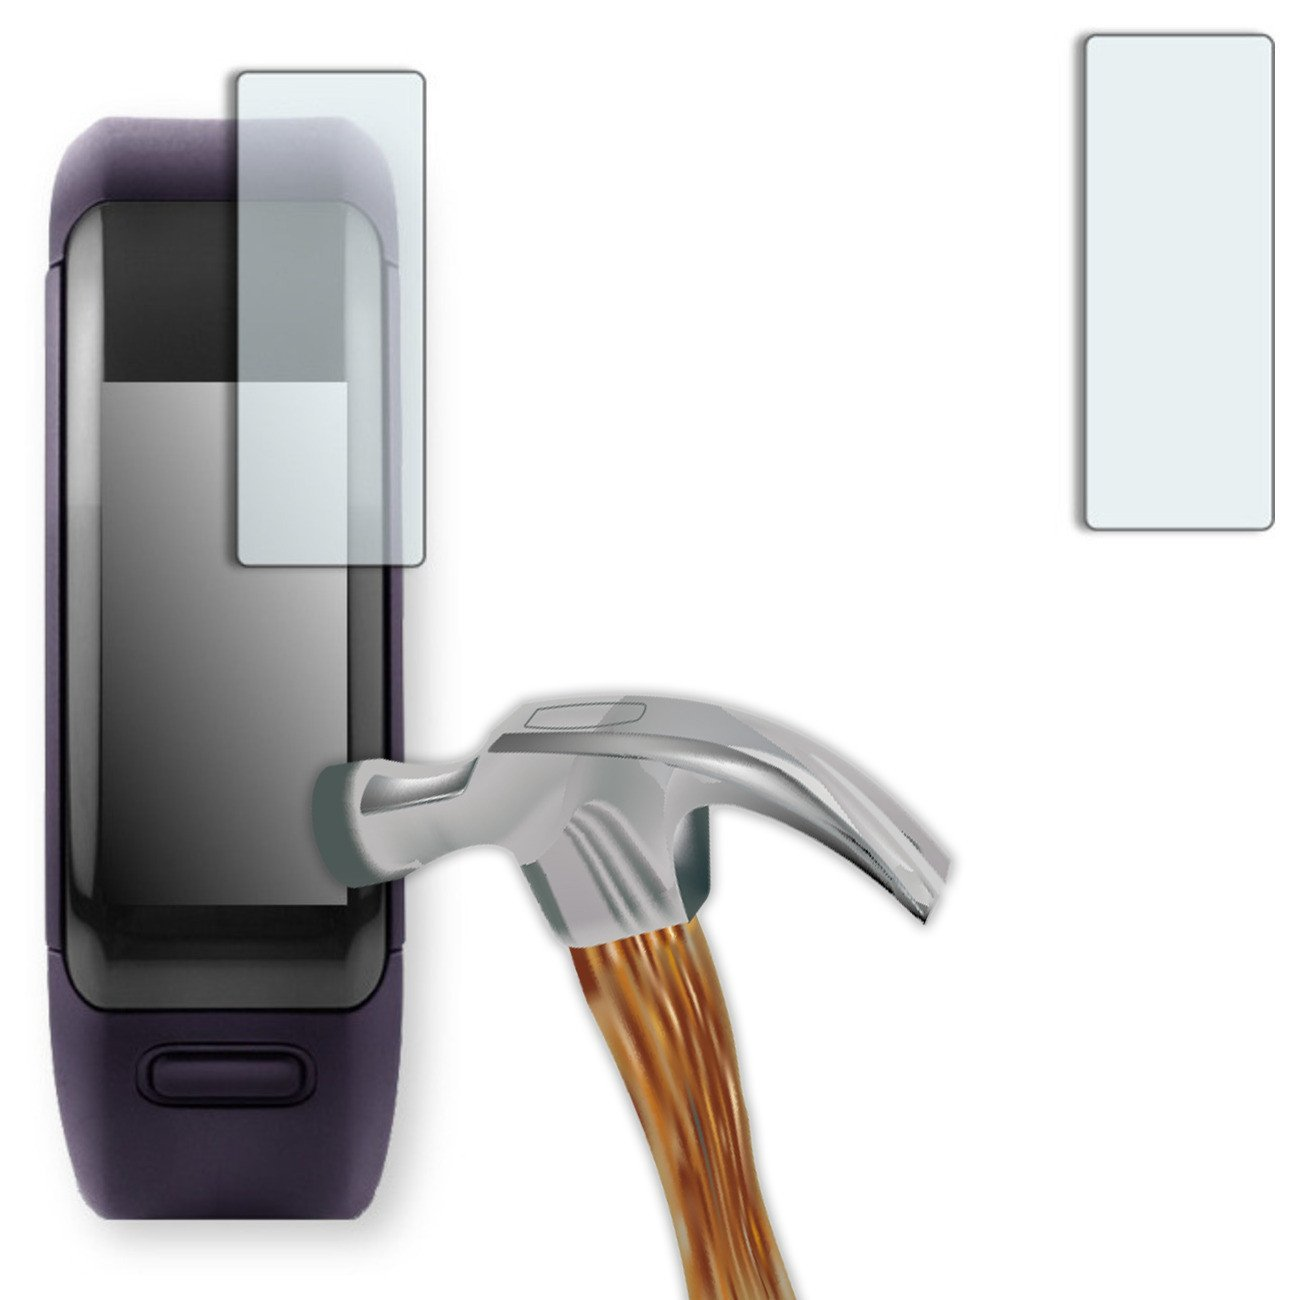 2 x DISAGU Armor screen protector for Garmin vivosmart HR screen fracture protection film (intentionally smaller than the display due to its curved surface)